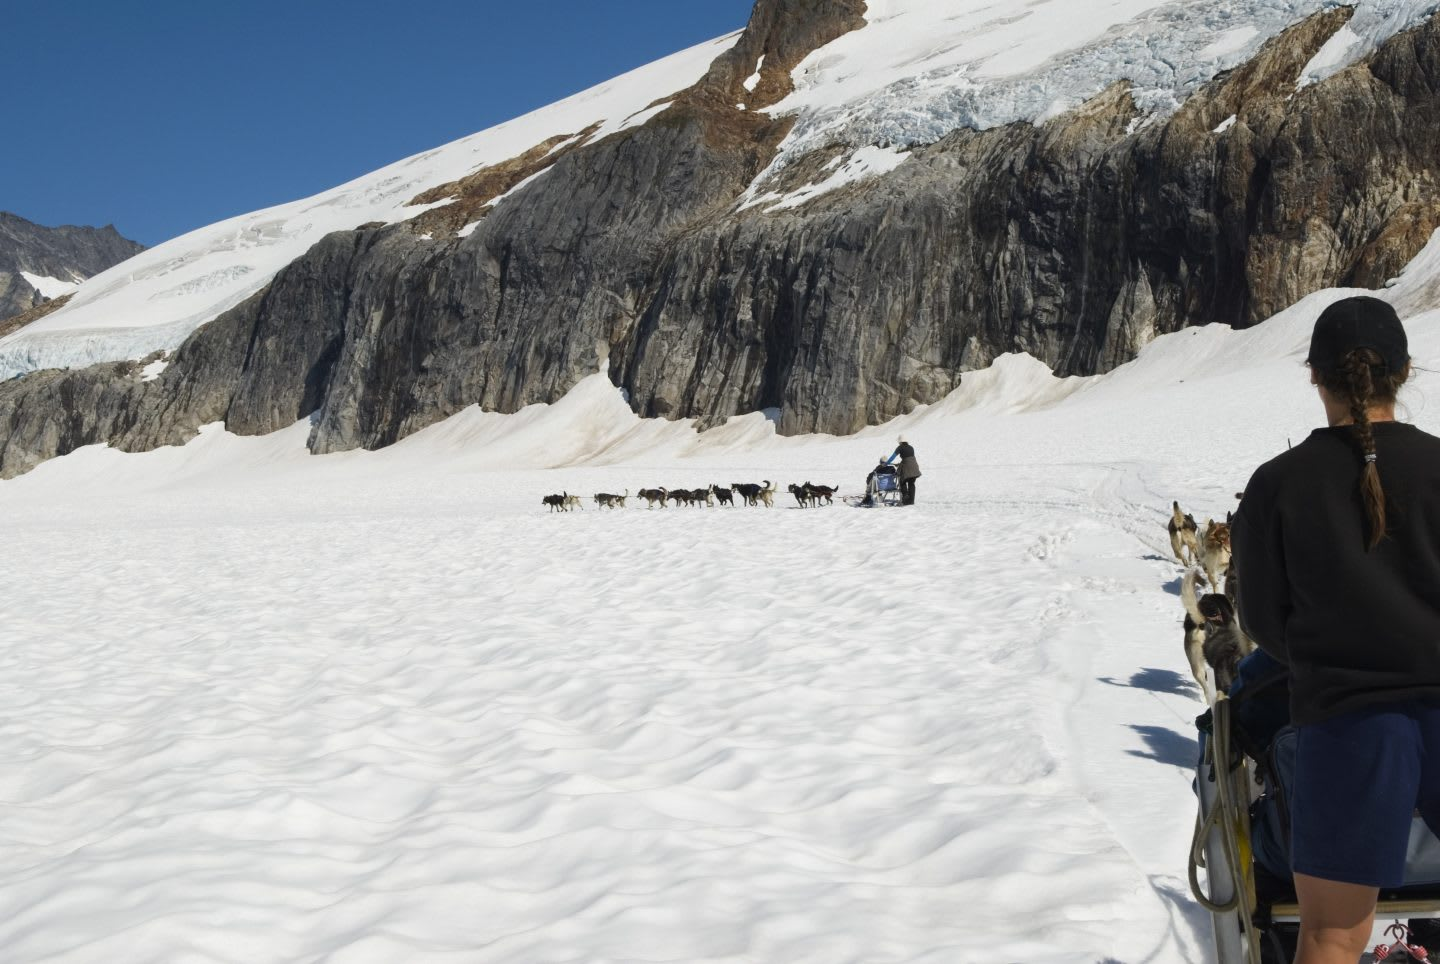 Woman driving a dogsled with another dogsled team on the trail ahead, snow, mountains